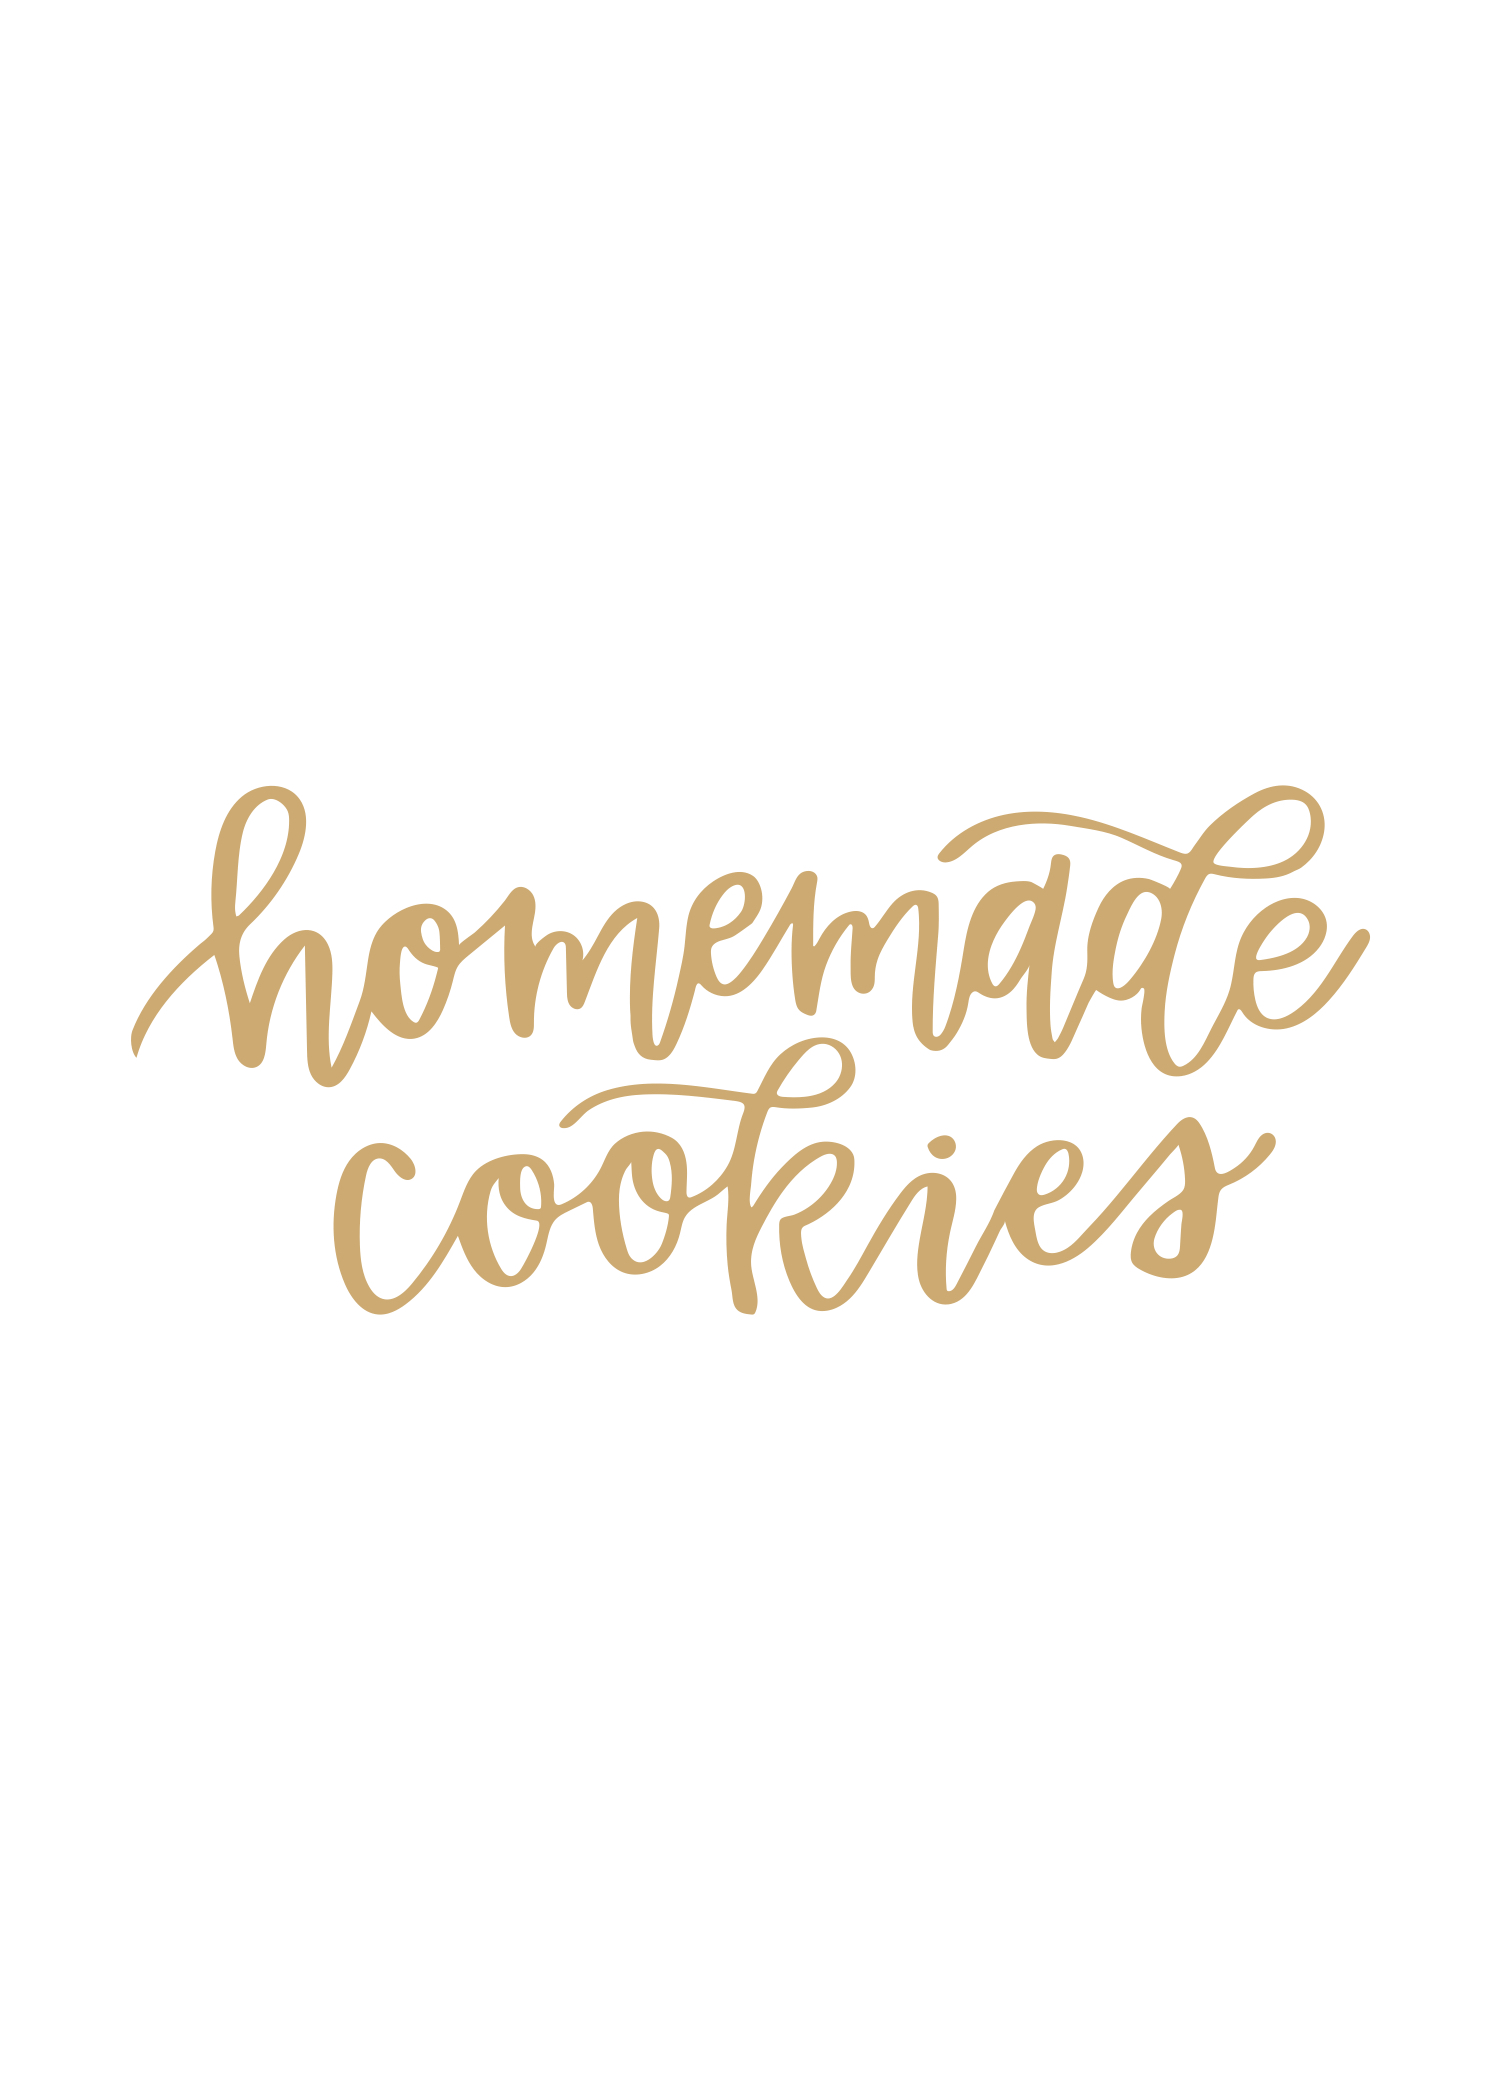 calligraphy of homemade cookies